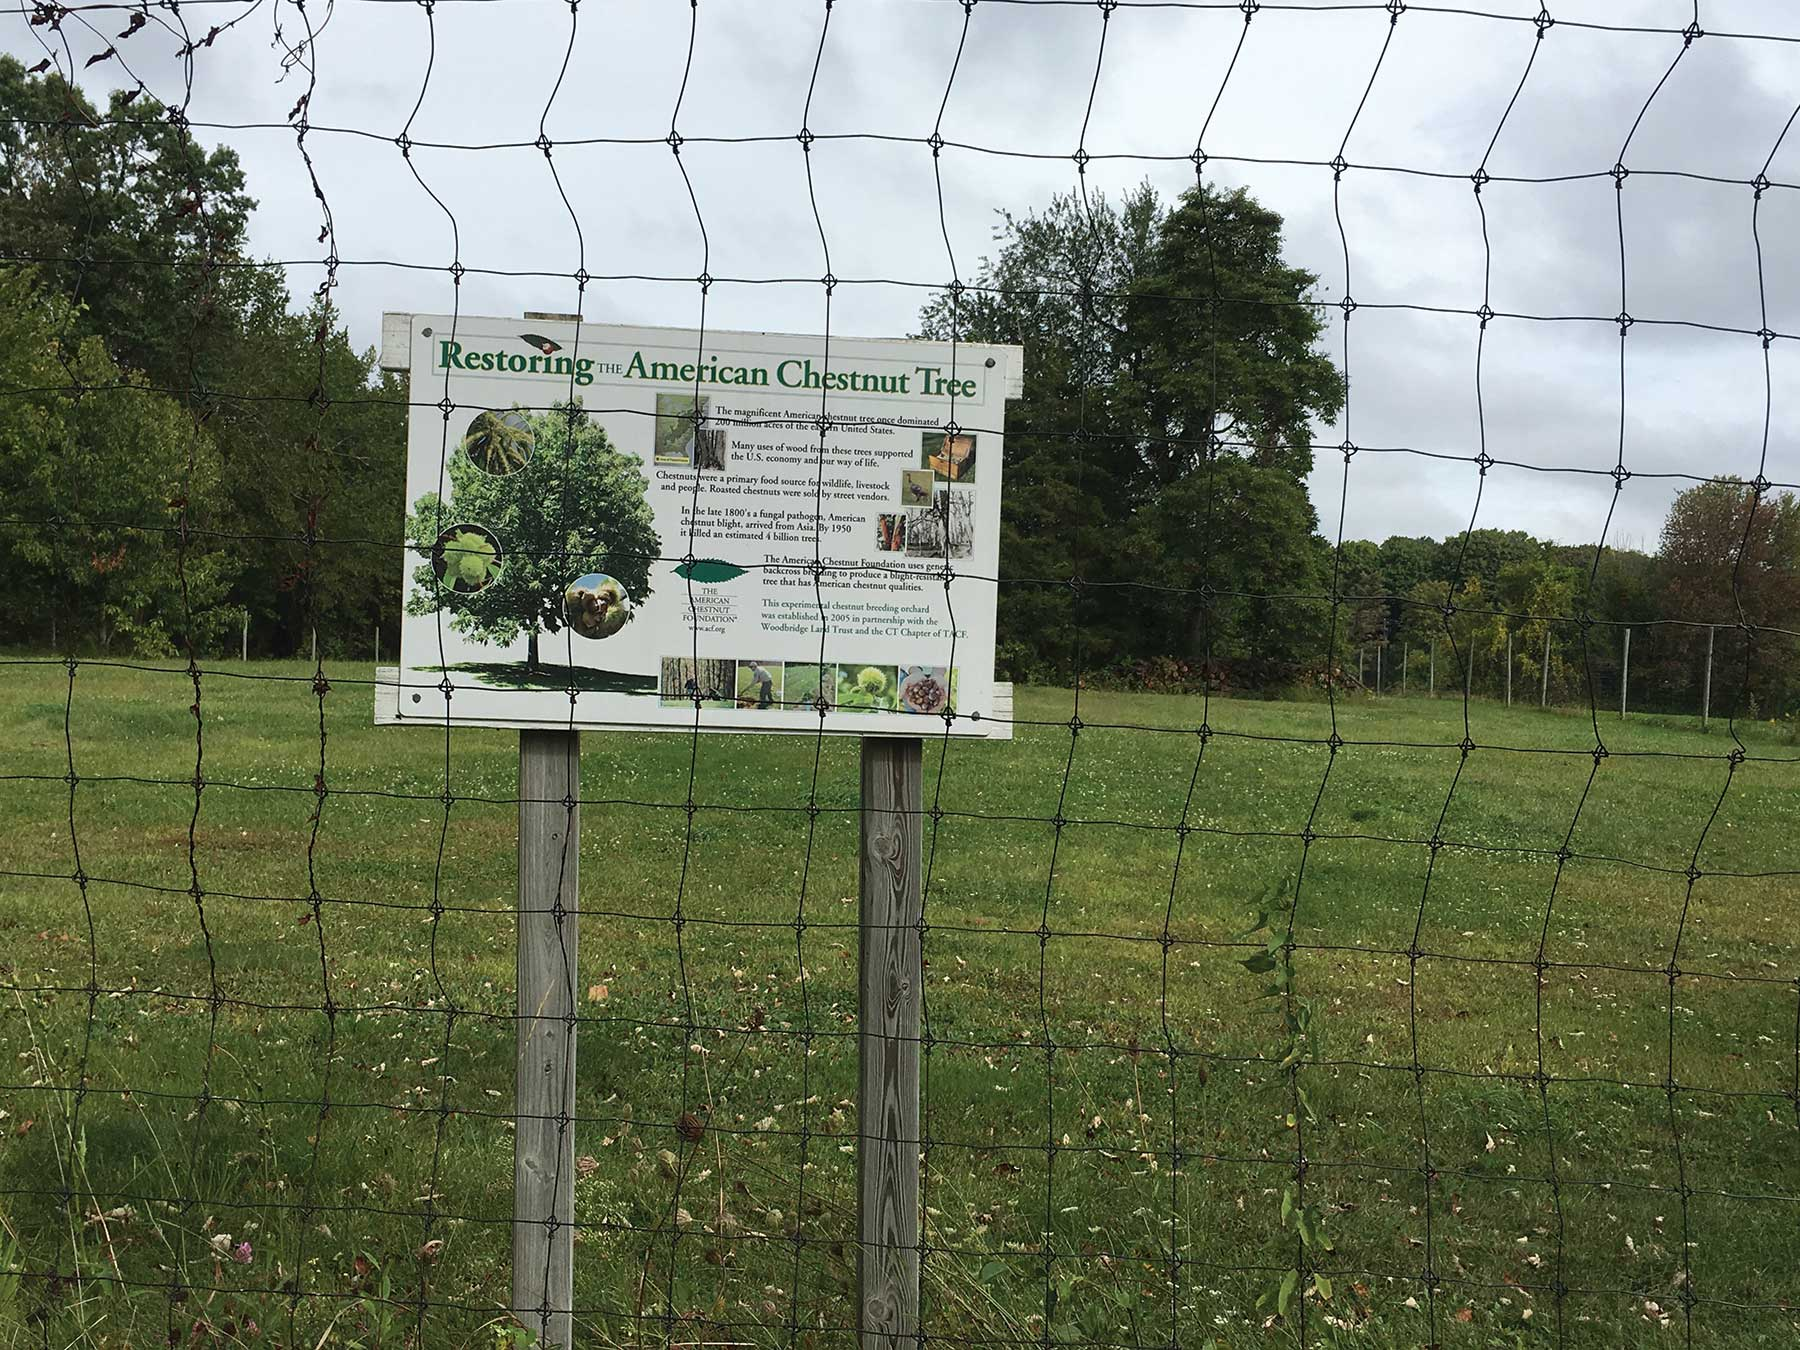 Group Works to Bring A Dog Park to Center of Town